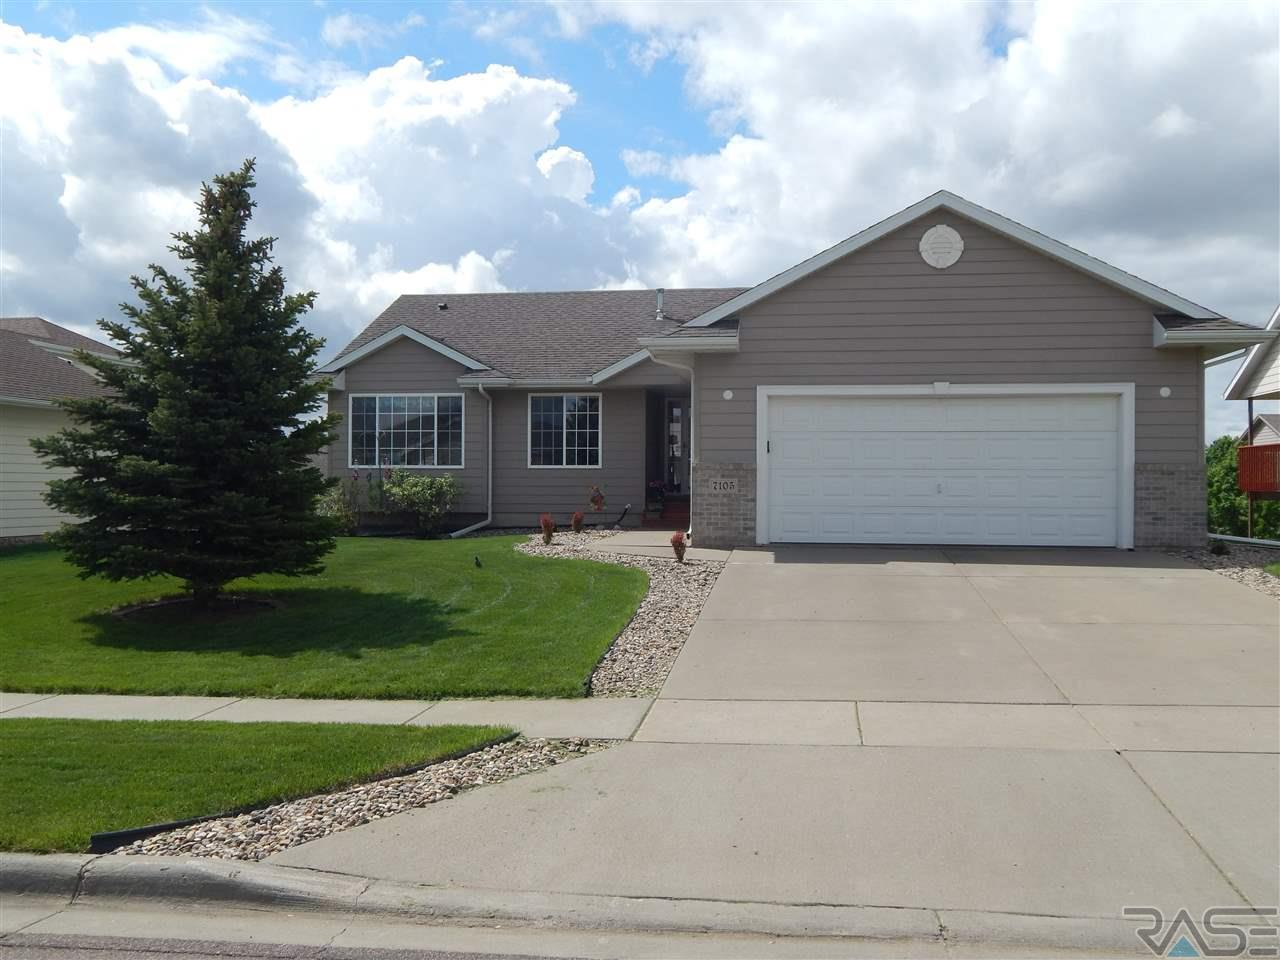 7105 W 52nd St, SIOUX FALLS